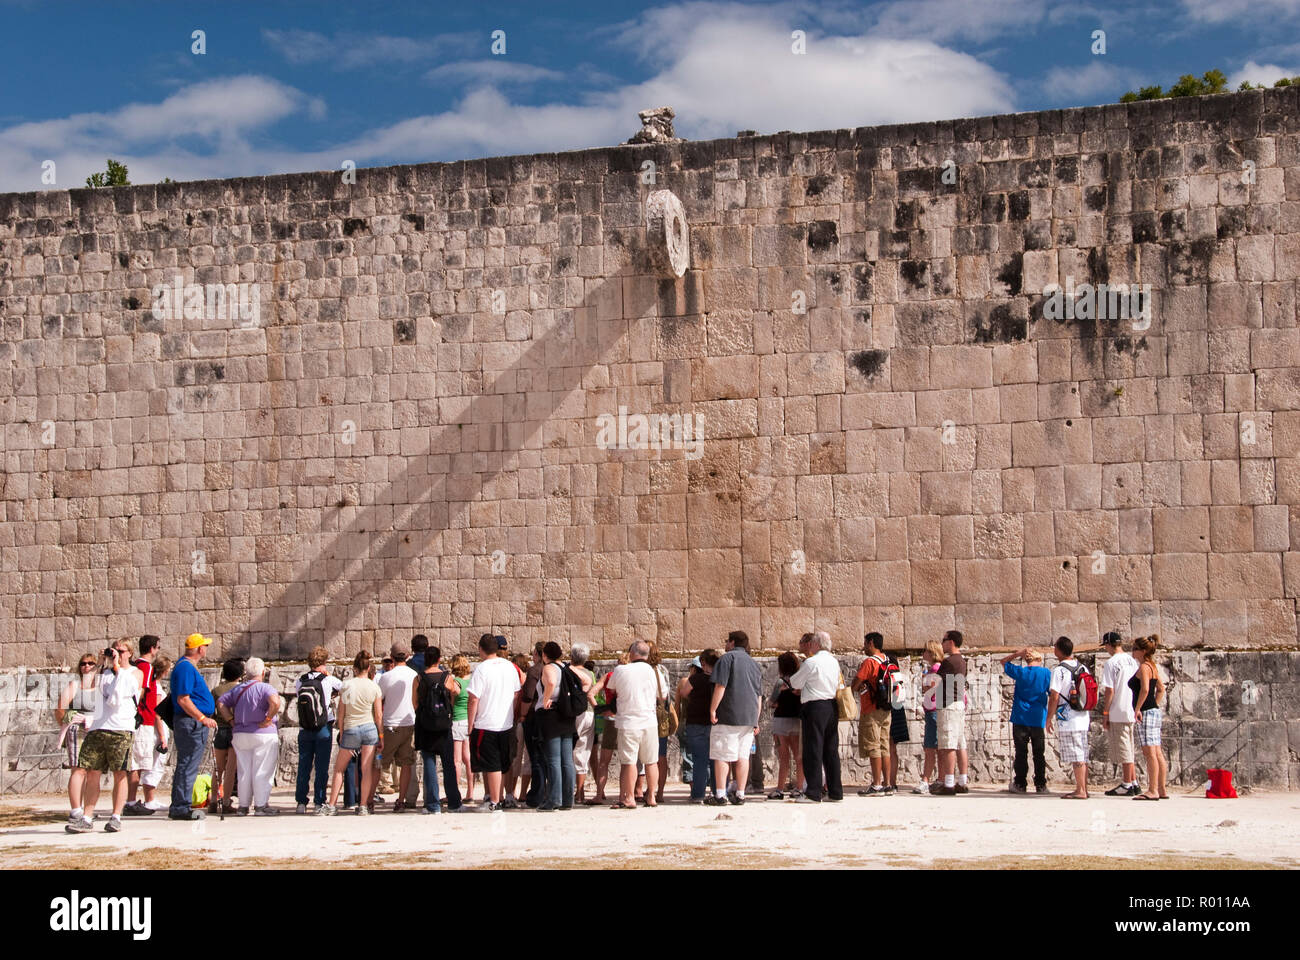 Tourists view the Great Ball Court (Gran Juego de Pelota), used to play a Mesoamerican ballgame, at Chichen Itza, Yucatan, Mexico. - Stock Image